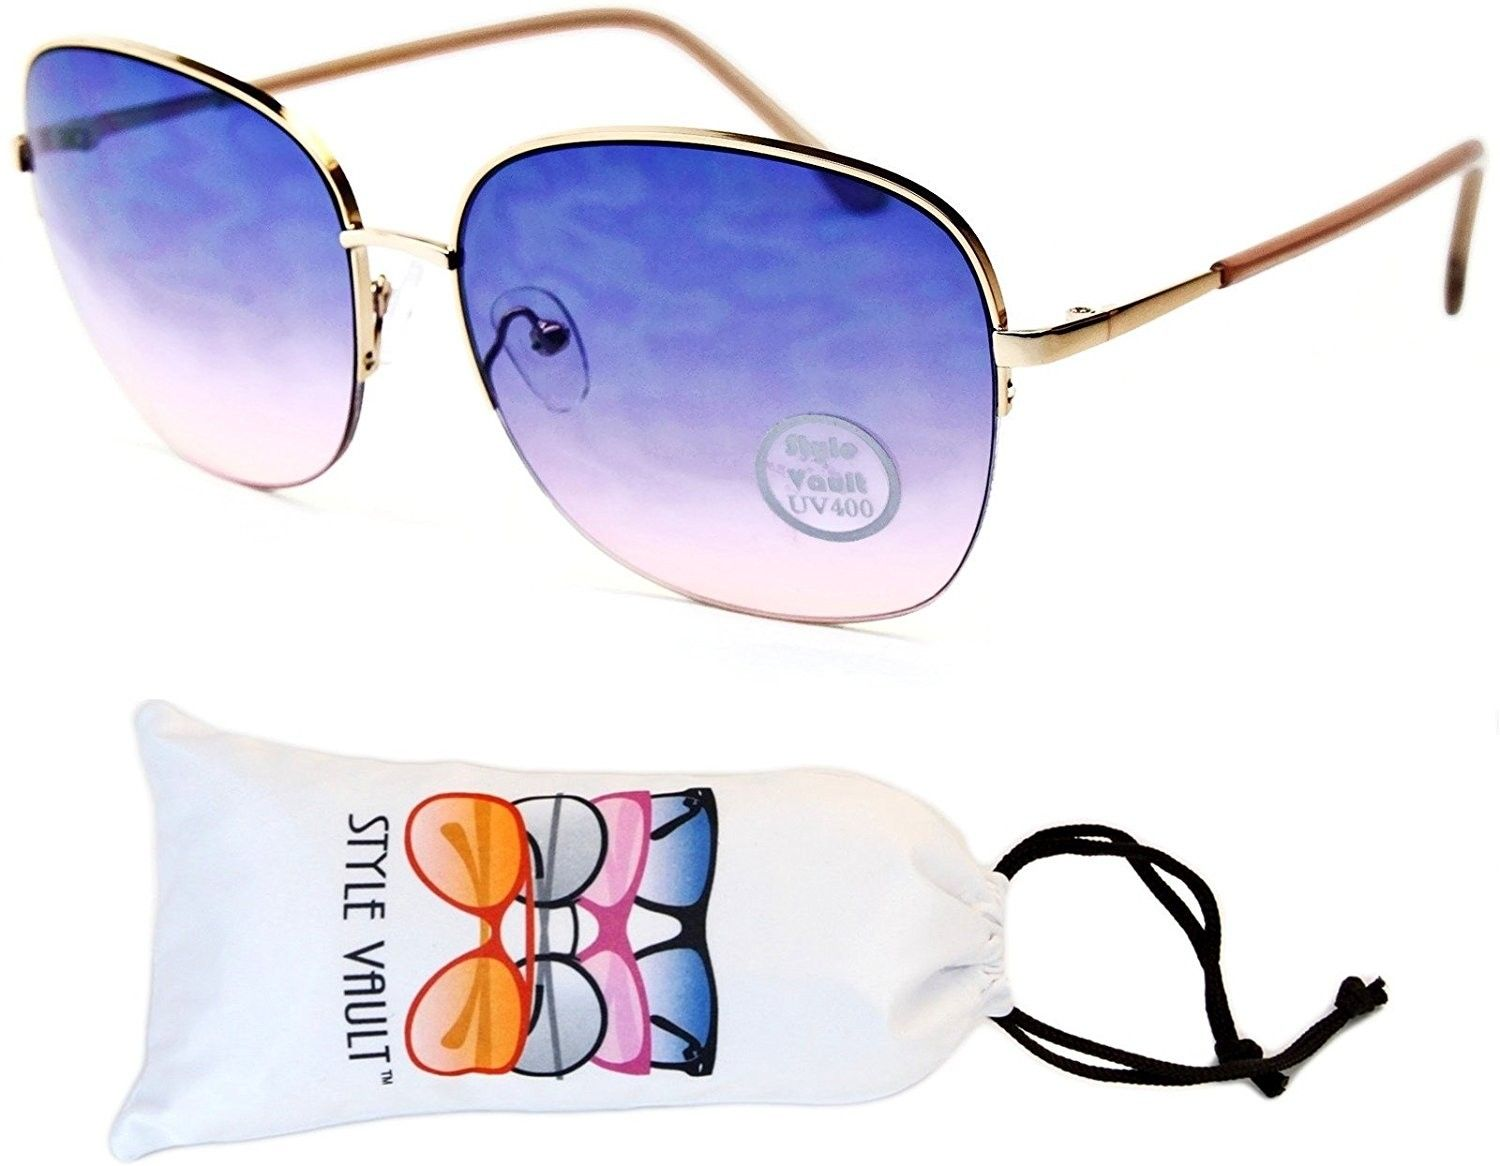 c1dde163ed Wm551-vp Metal Butterfly Unique Sunglasses - F3121r Gold Beige-bluish Pink  - CZ12J3C21RR